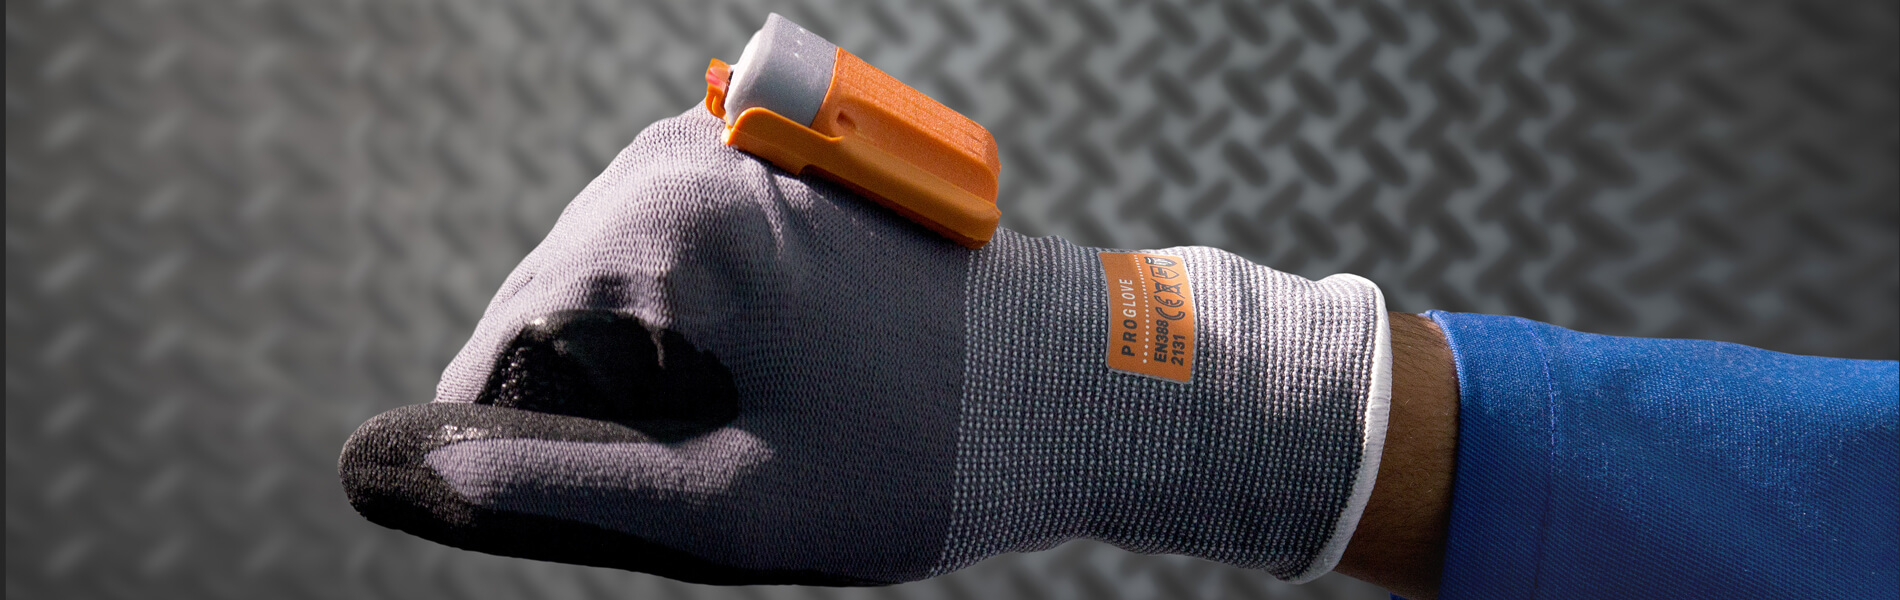 Intralogistics: intelligent scanning glove optimizes picking process